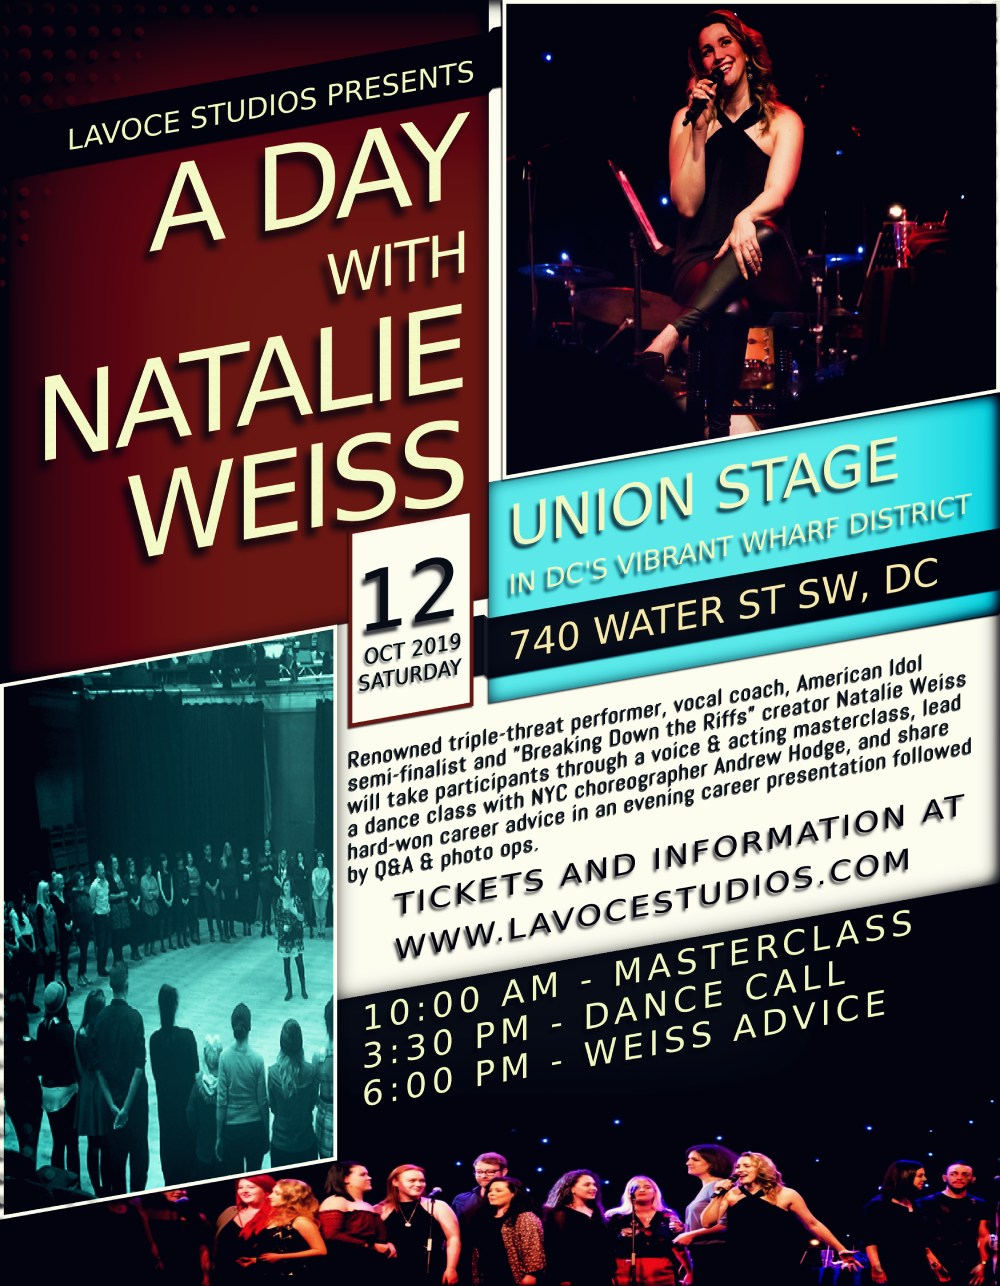 Natalie Weiss - LaVoce Studios